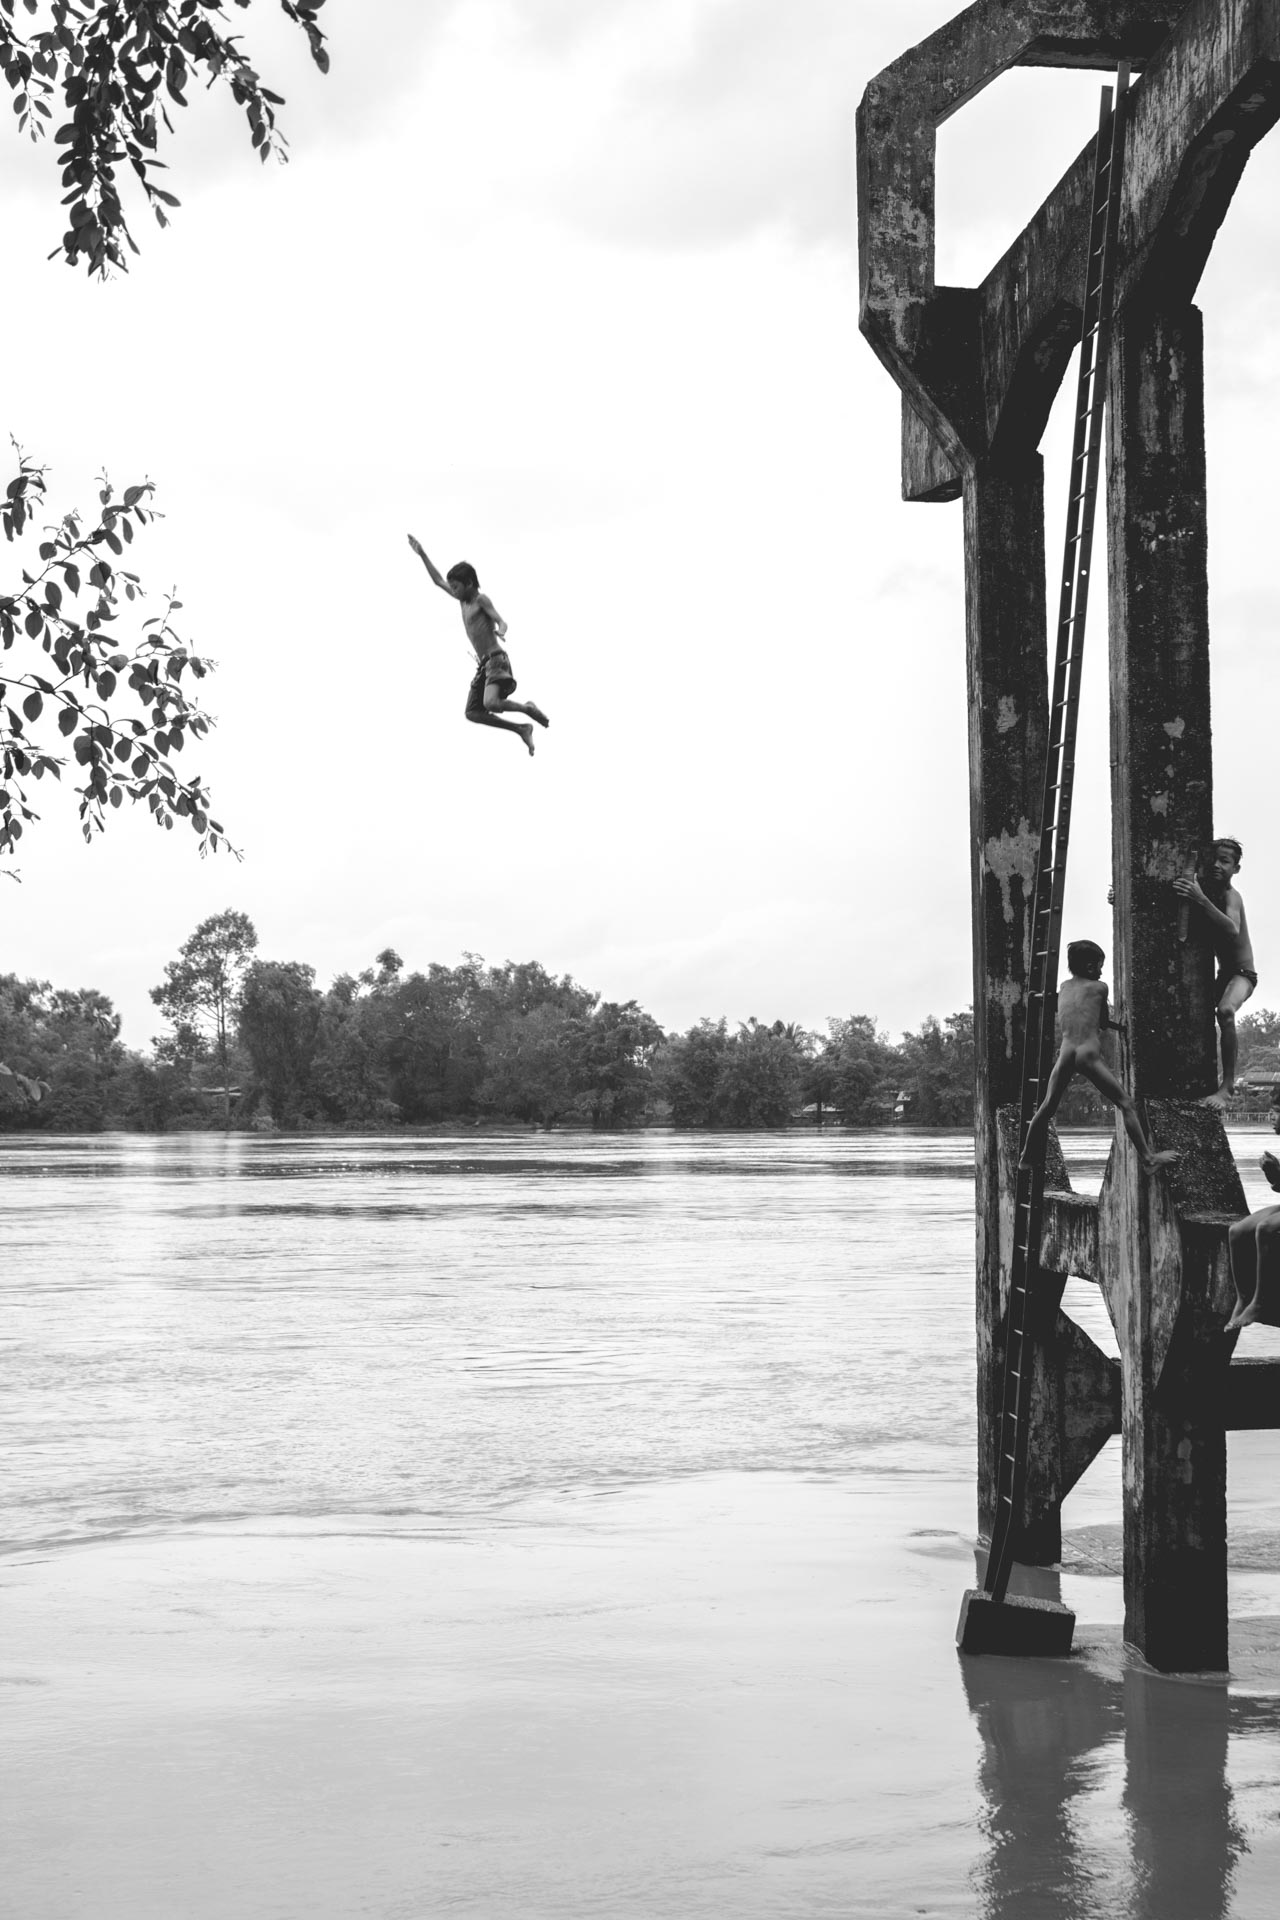 Children jumping off an old aqueduct into the Mekong river at Don Det. Laos